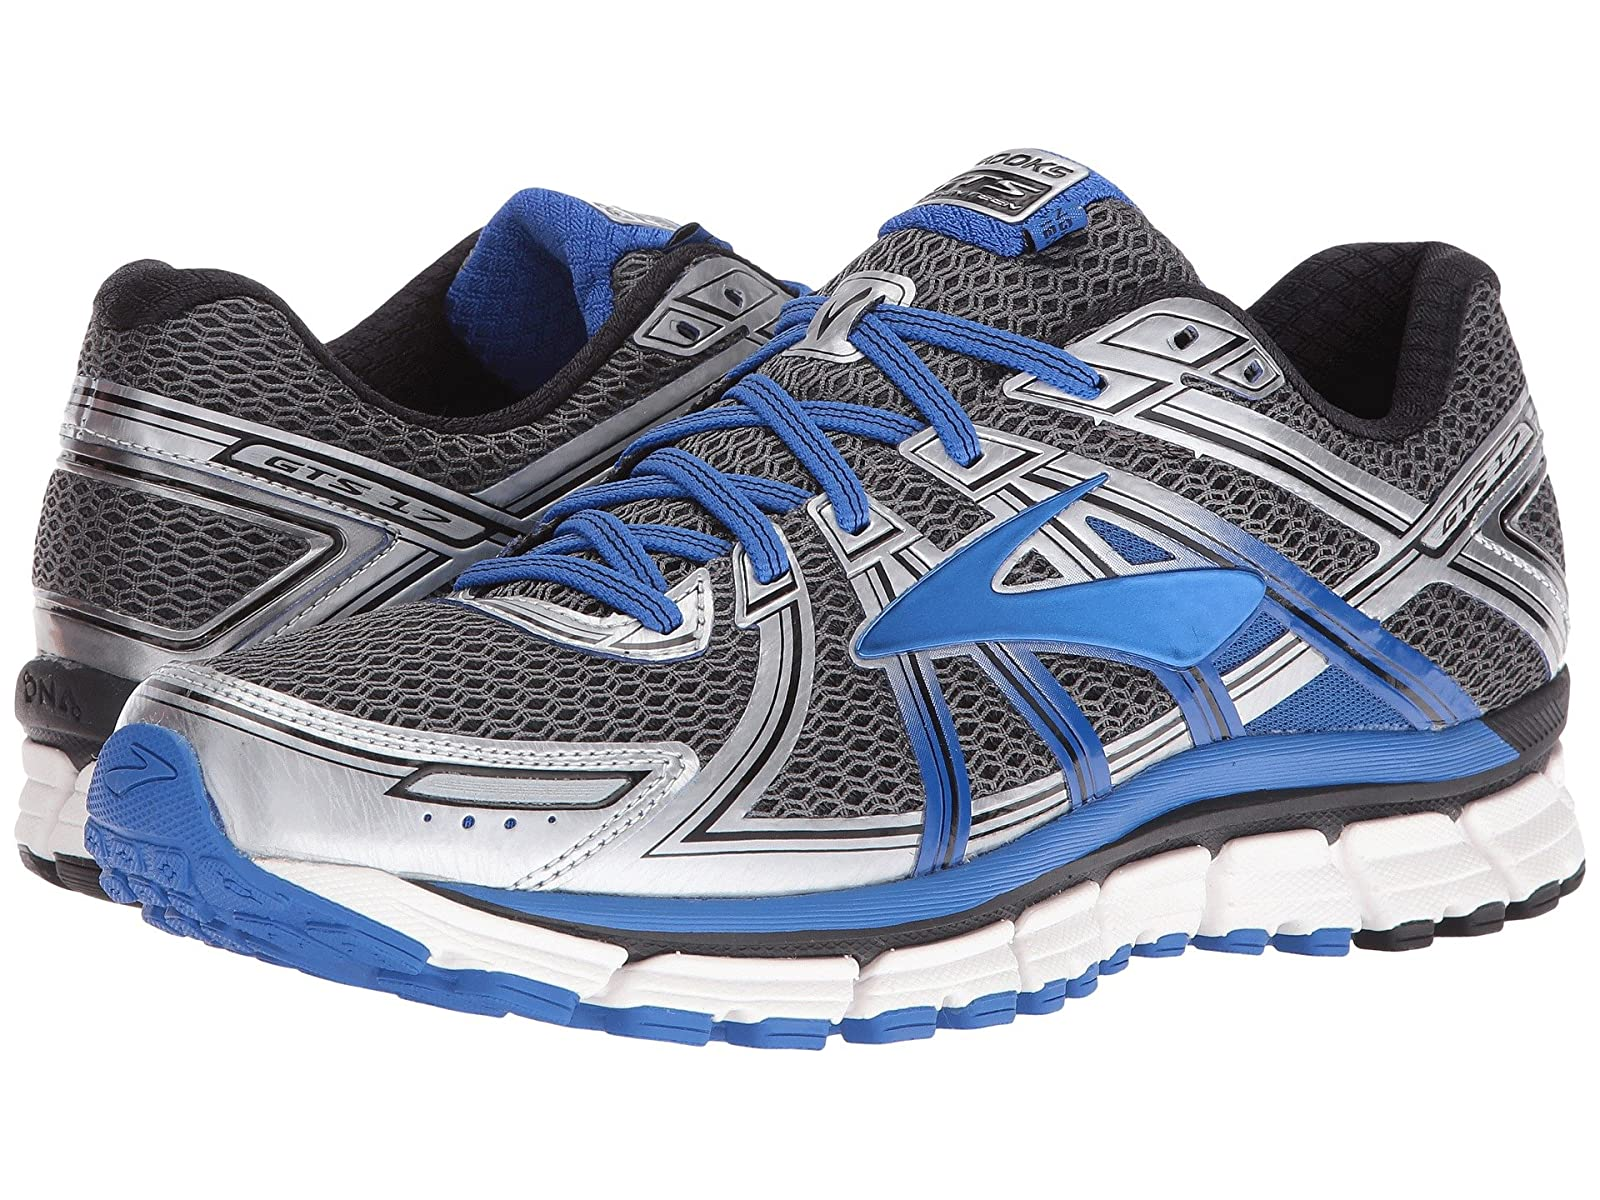 Brooks Adrenaline GTS 17Cheap and distinctive eye-catching shoes